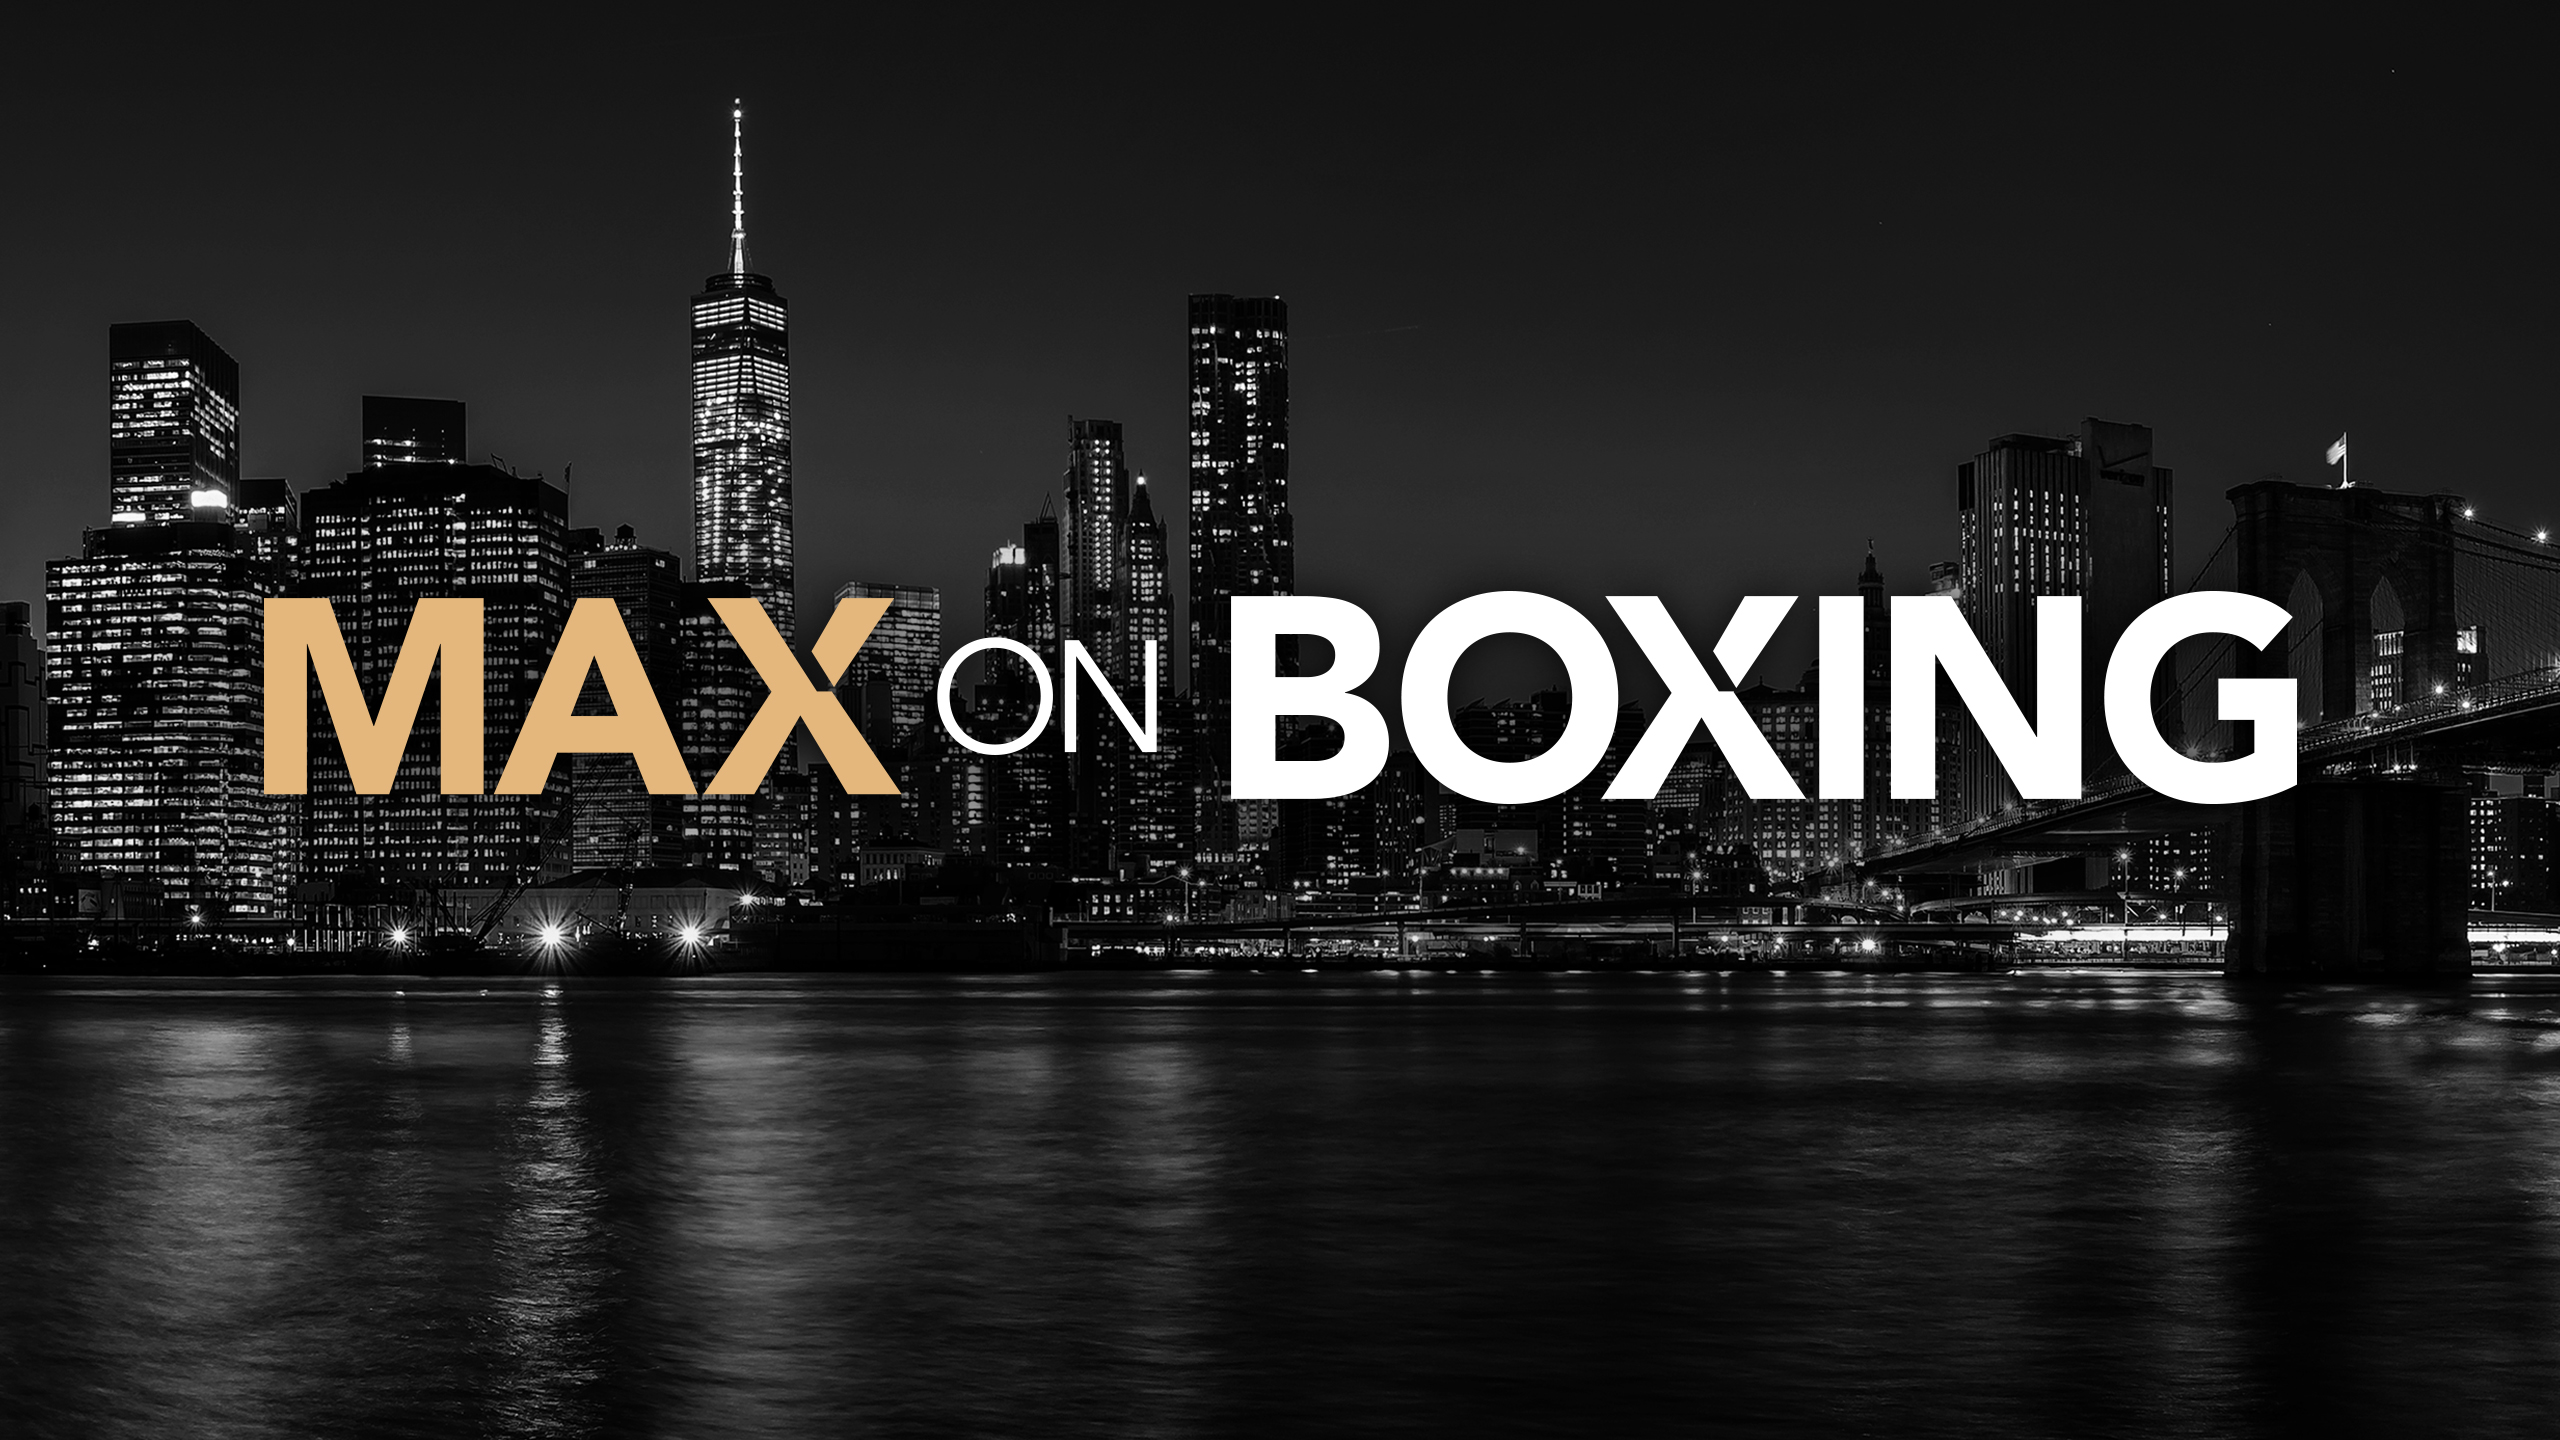 Fri, 2/15 - Max on Boxing